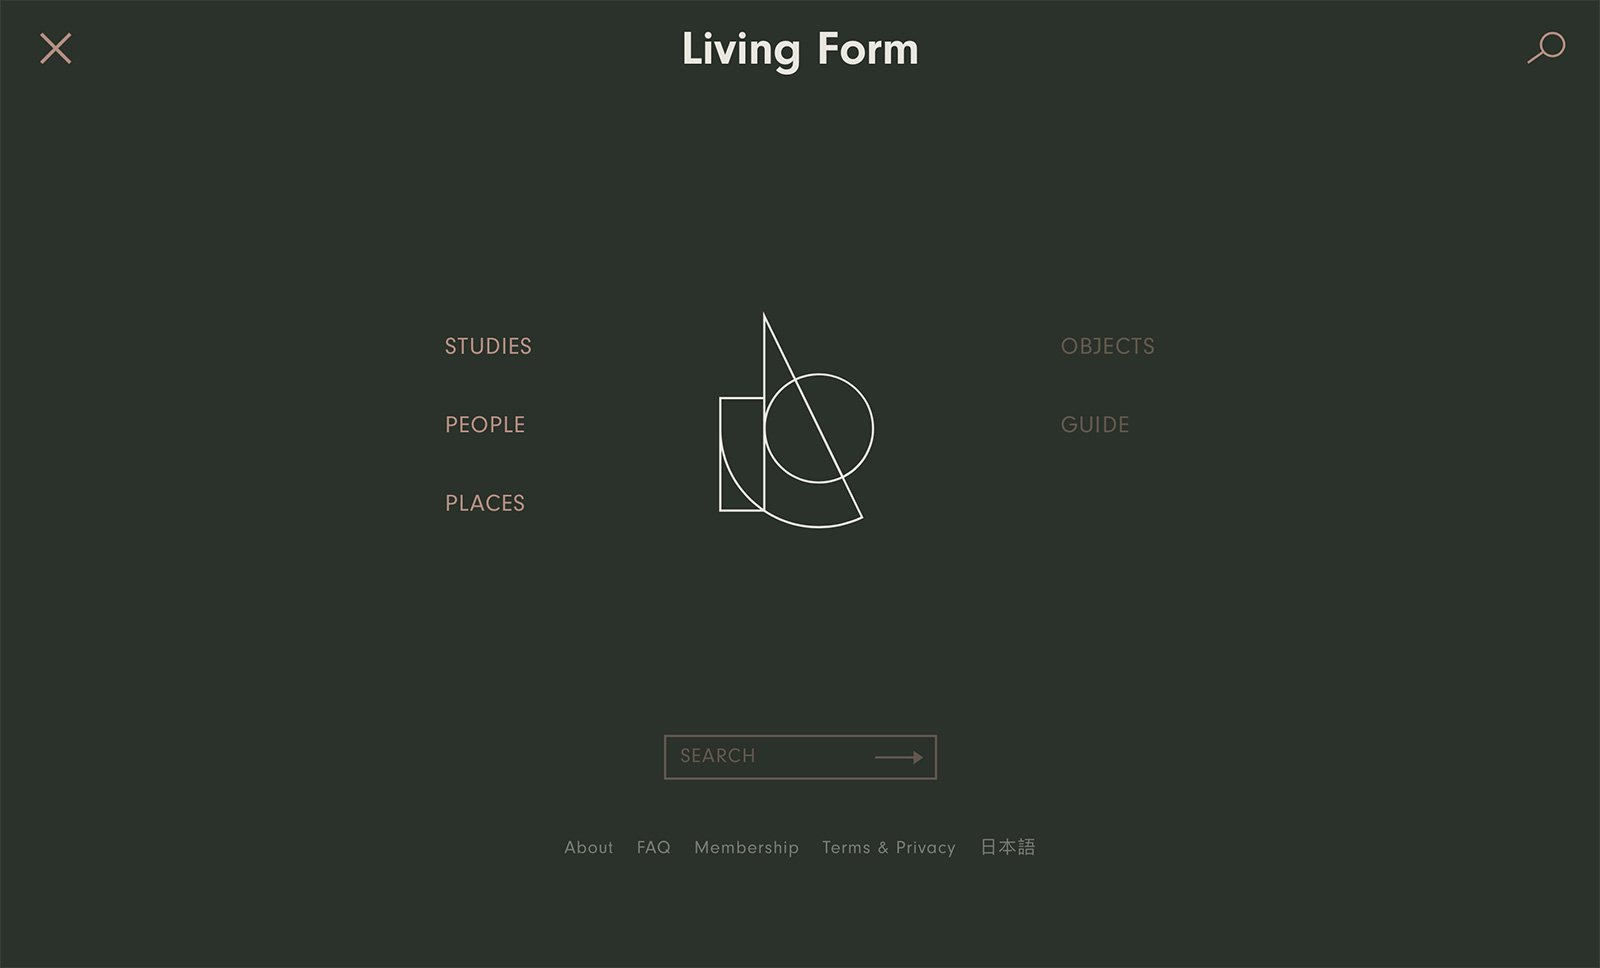 Go To Living Form